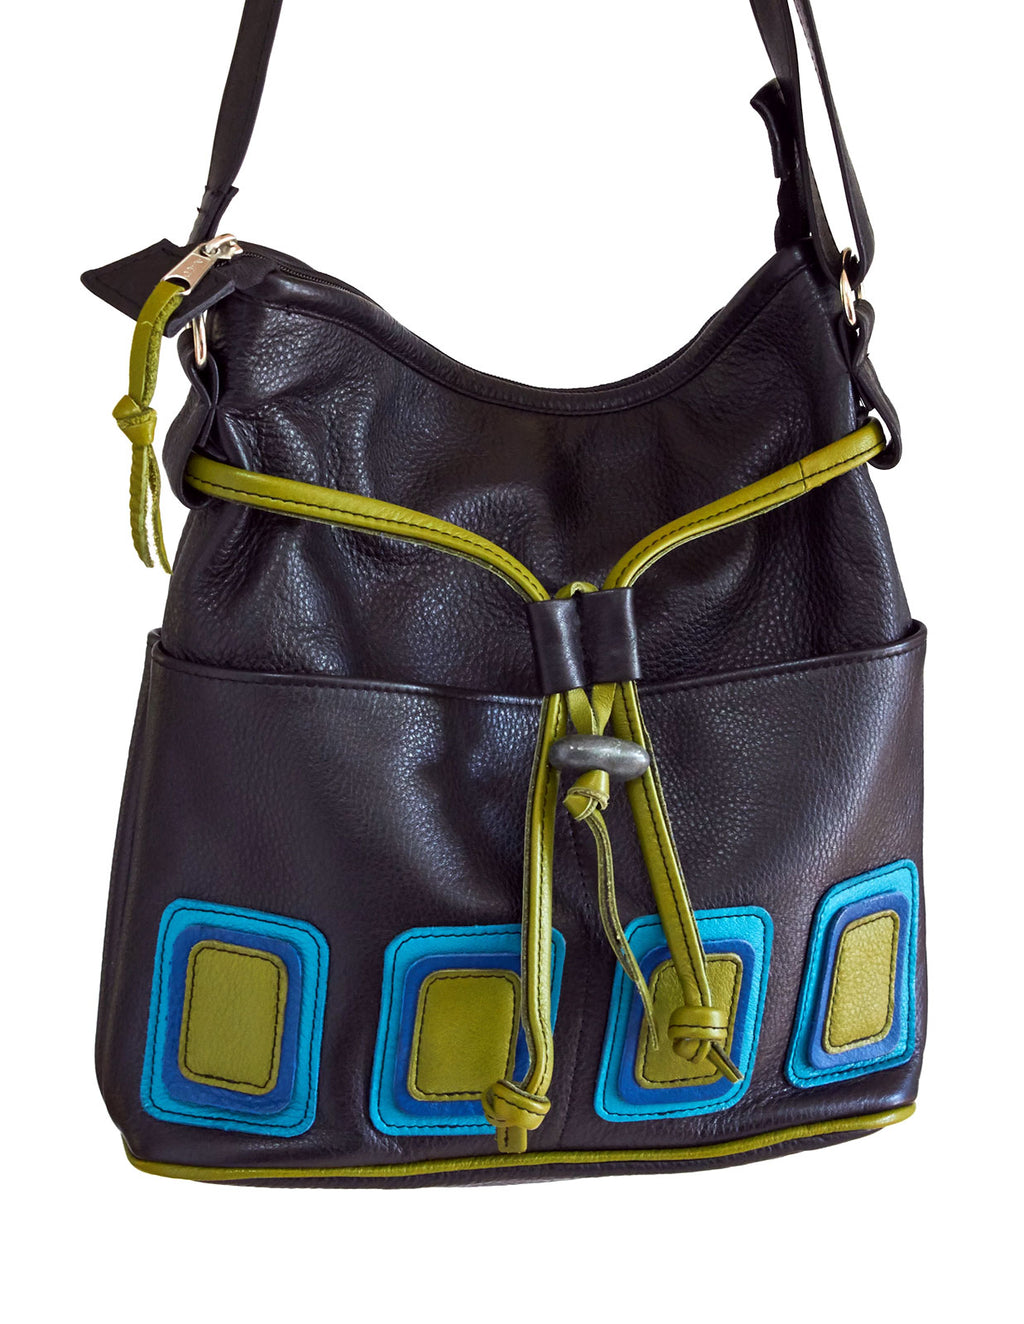 Op-Art Four-Pocket Purse - Indian Summer's designer leather purses